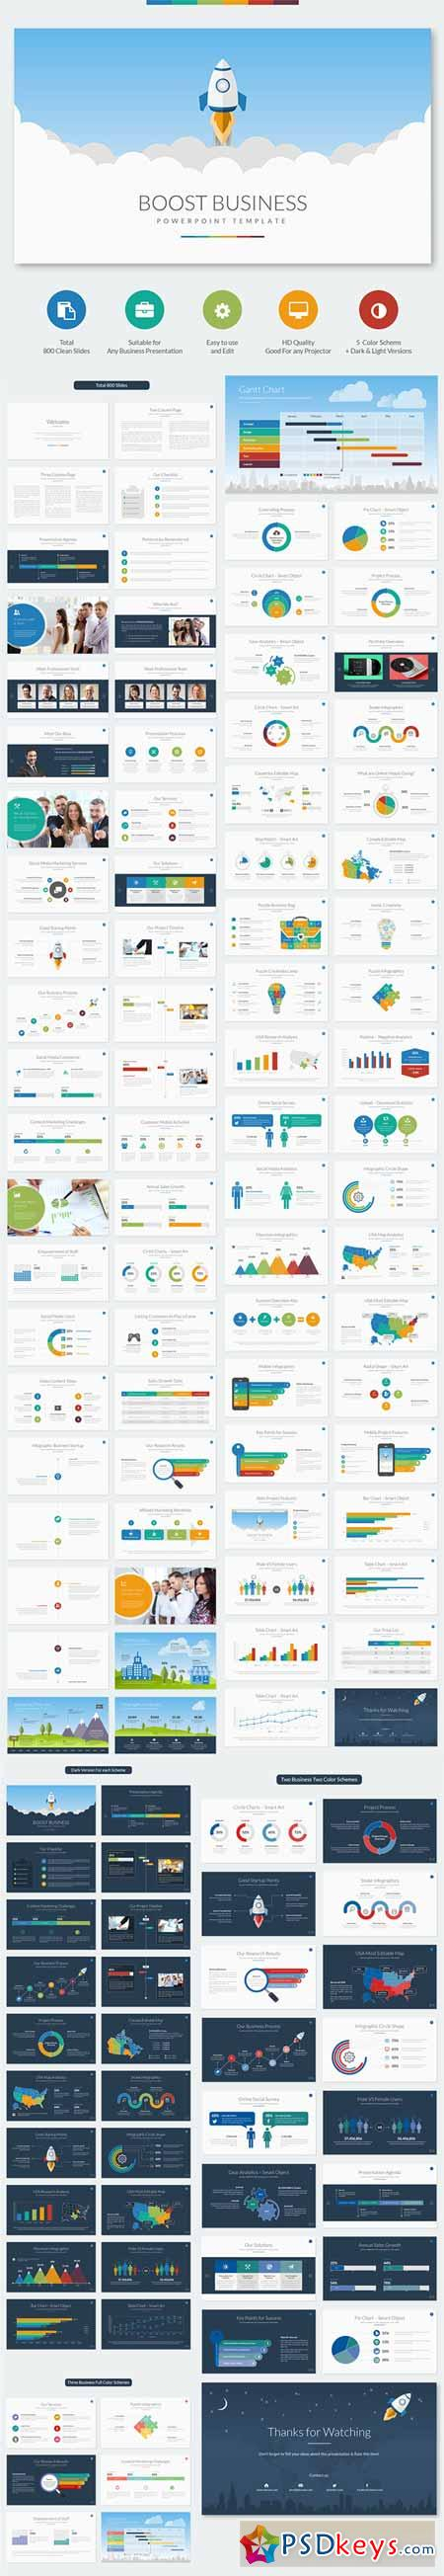 Boost business powerpoint template 10171379 free download boost business powerpoint template 10171379 toneelgroepblik Choice Image